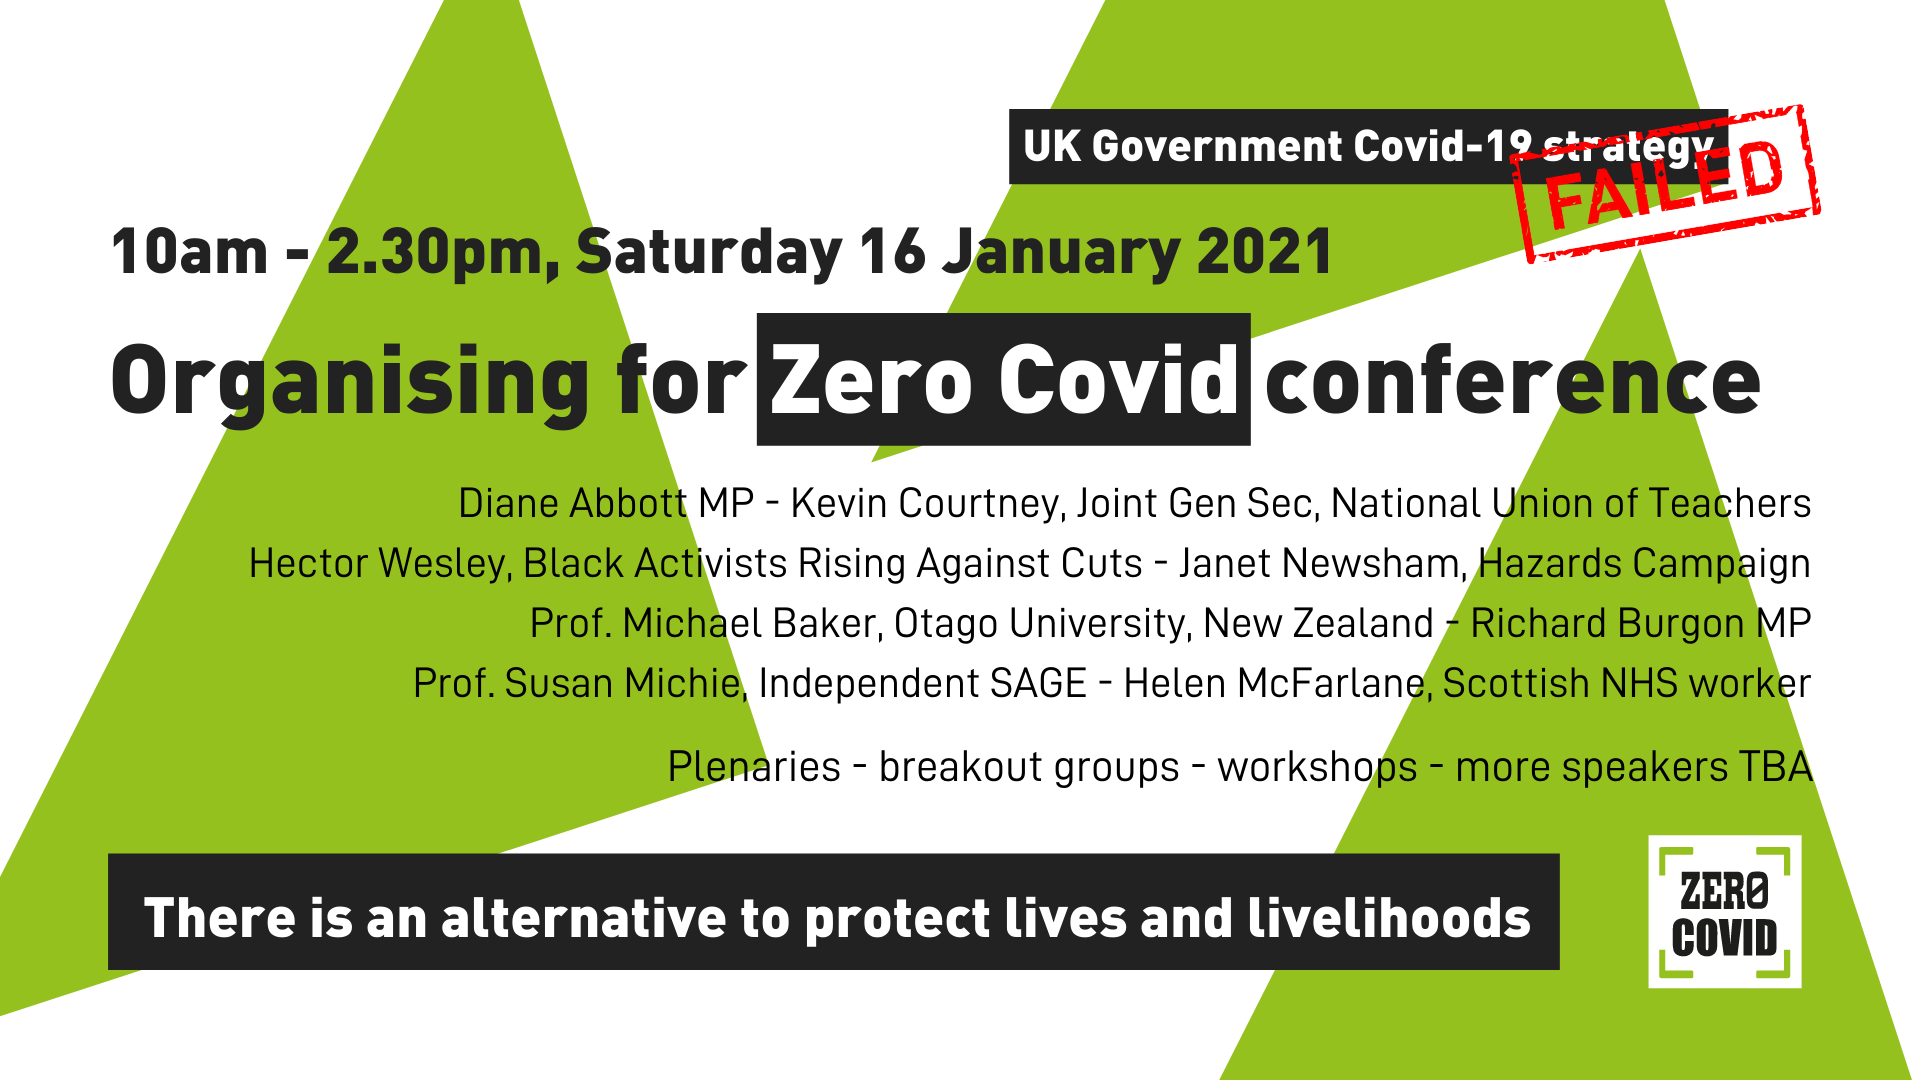 Graphic advertising an upcoming conference on achieving Zero Covid